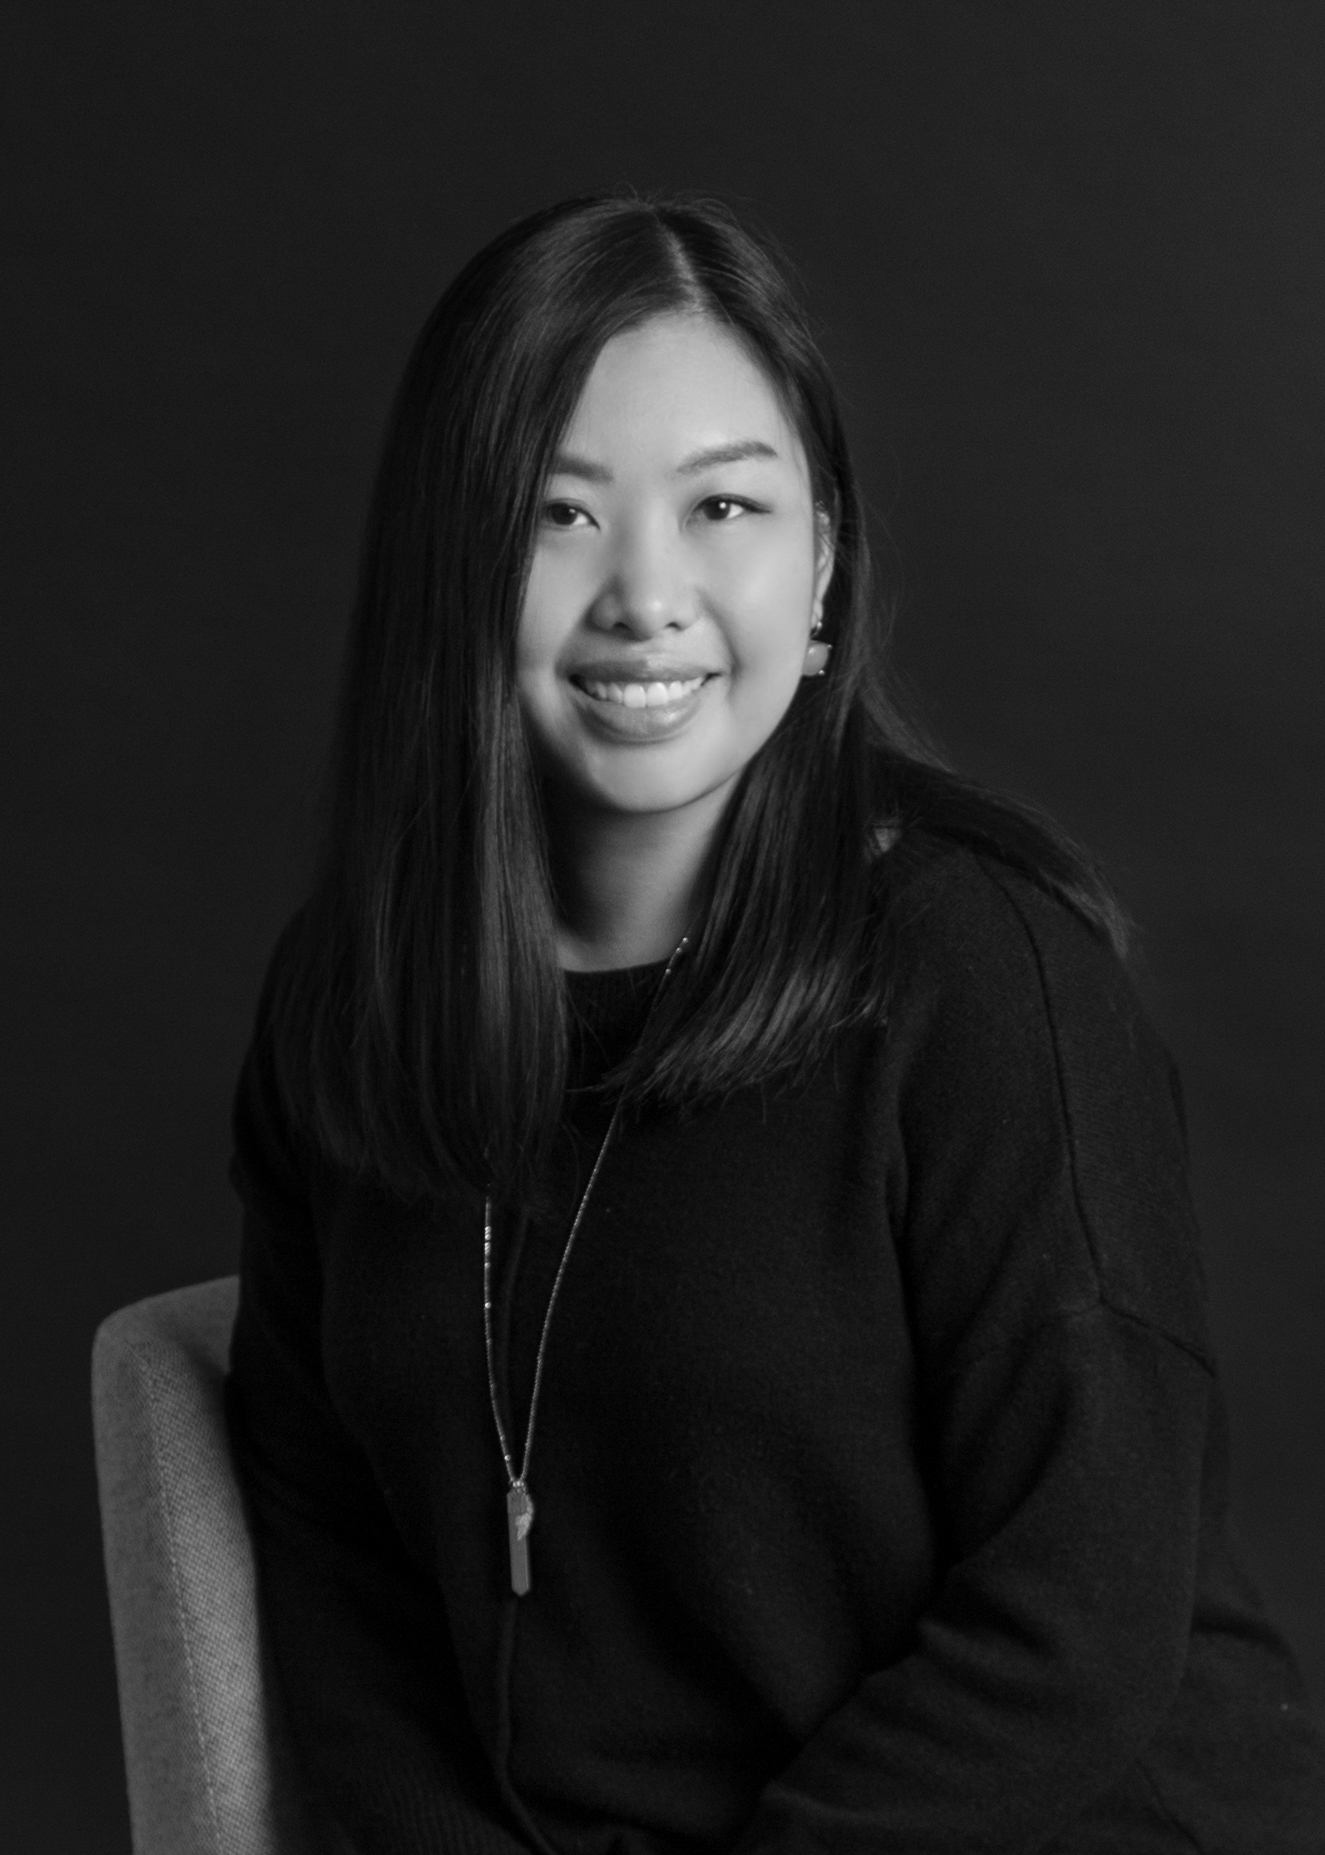 LINNA YOON |  Design Team Leader  Linna is a design team leader at MDI and lover of modern, clean design. Linna strives to create innovative and efficient design solutions that will promote well-being and productivity.  After her bachelor's degree in Interior Design, minor in Architecture, and Master's degree in Environmental Design, Linna joined MDI in 2013. Aside from her endless education, she has over 6 years experience in commercial furniture as a dealer and a representative,   Linna is always focused on keeping a healthy, balanced work life and family life. You could describe Linna as a kimchi-addict, Korean drama fanatic, cheesecake lover, and part-time painter.     Get in touch with Linna